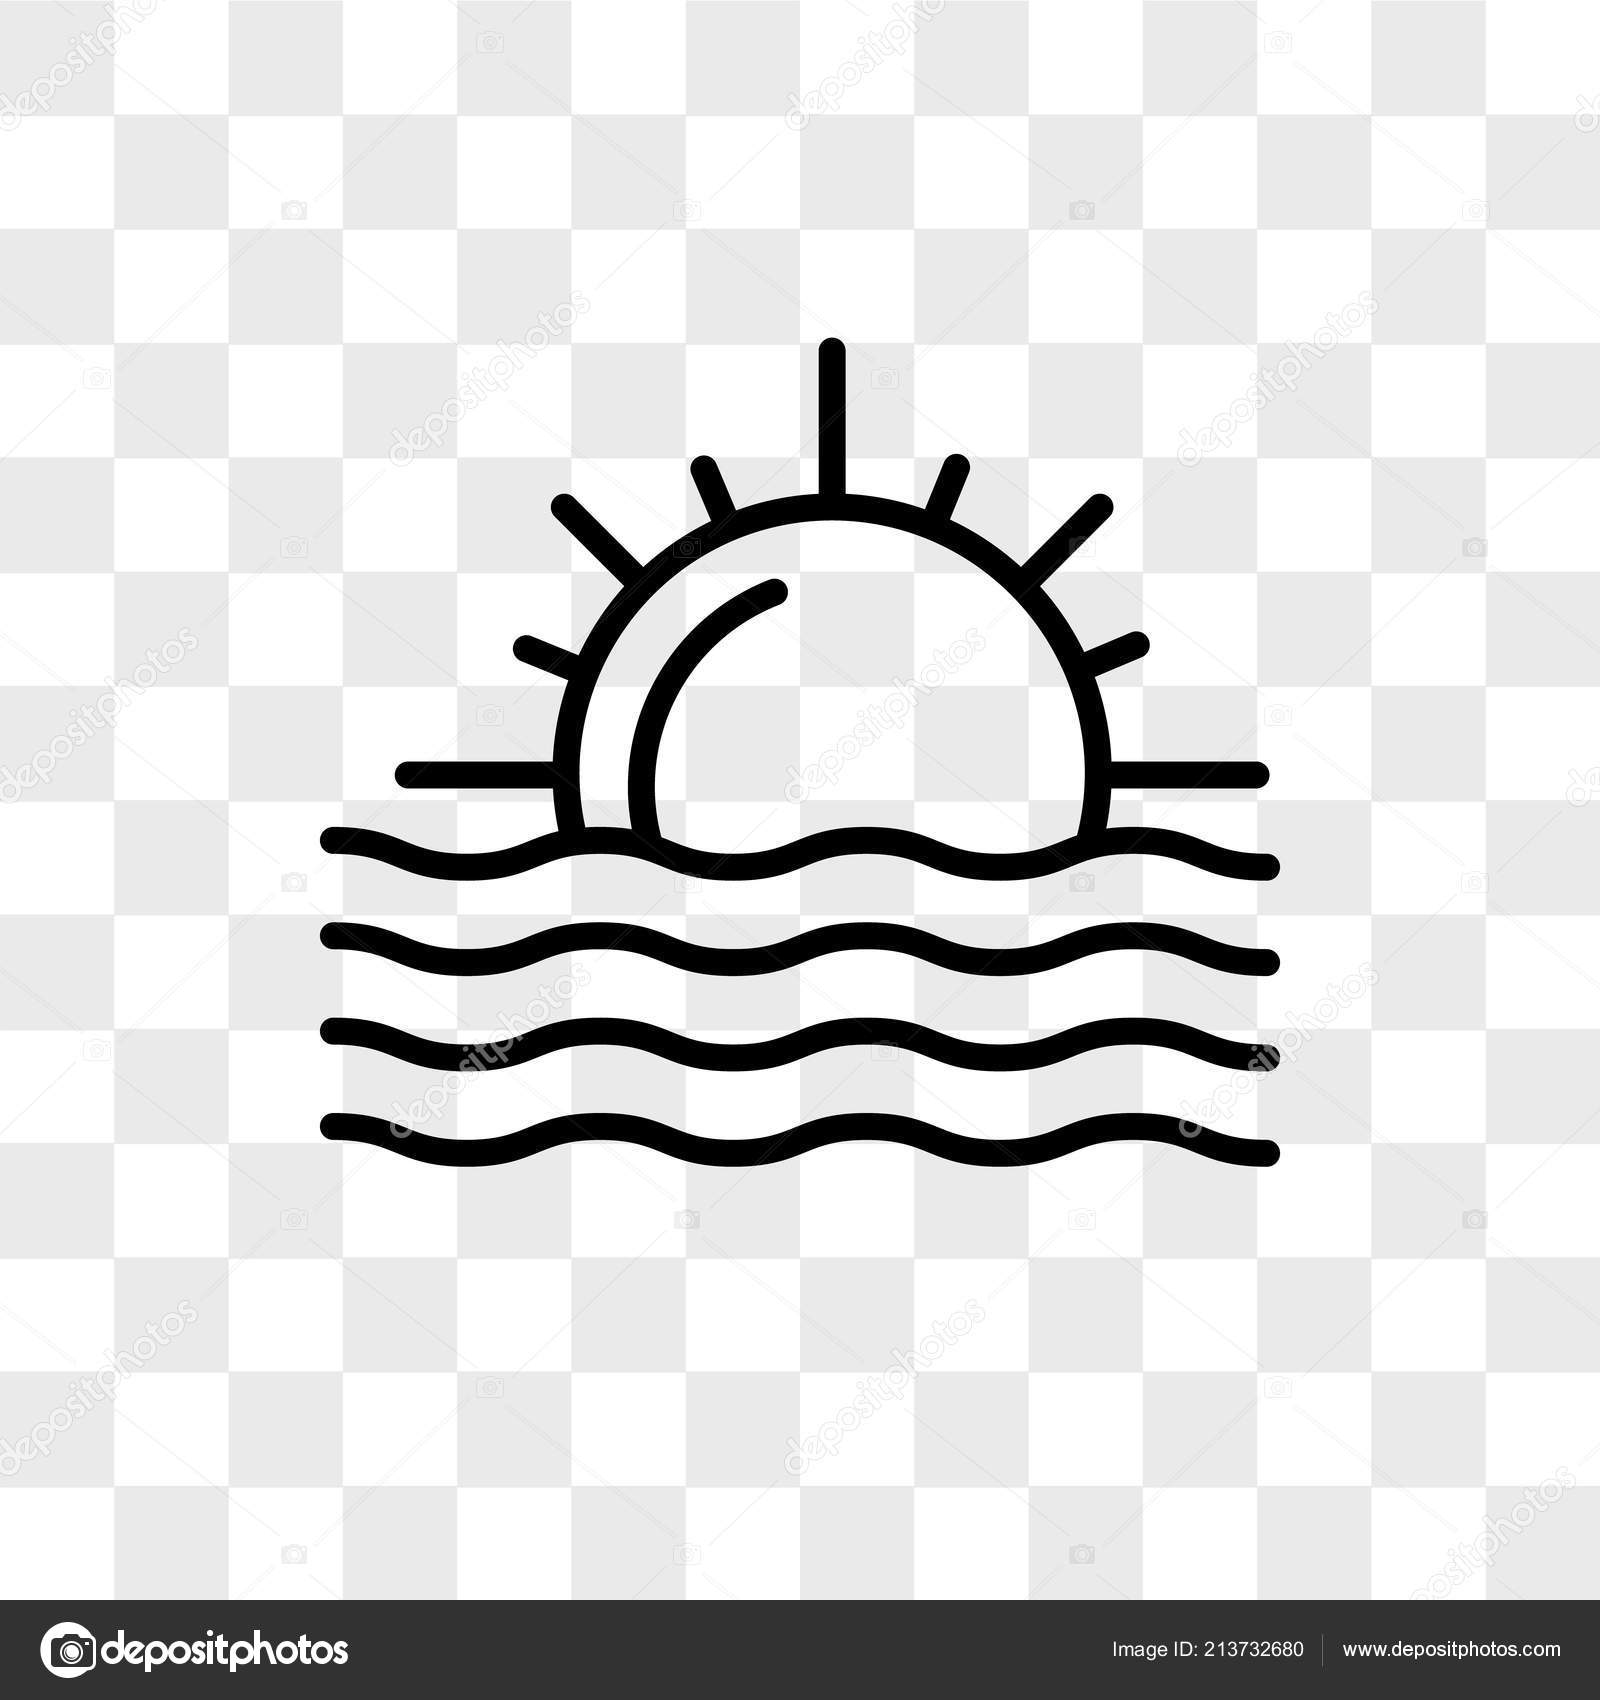 sunset vector icon isolated on transparent background sunset lo stock vector c provectorstock 213732680 https depositphotos com 213732680 stock illustration sunset vector icon isolated on html